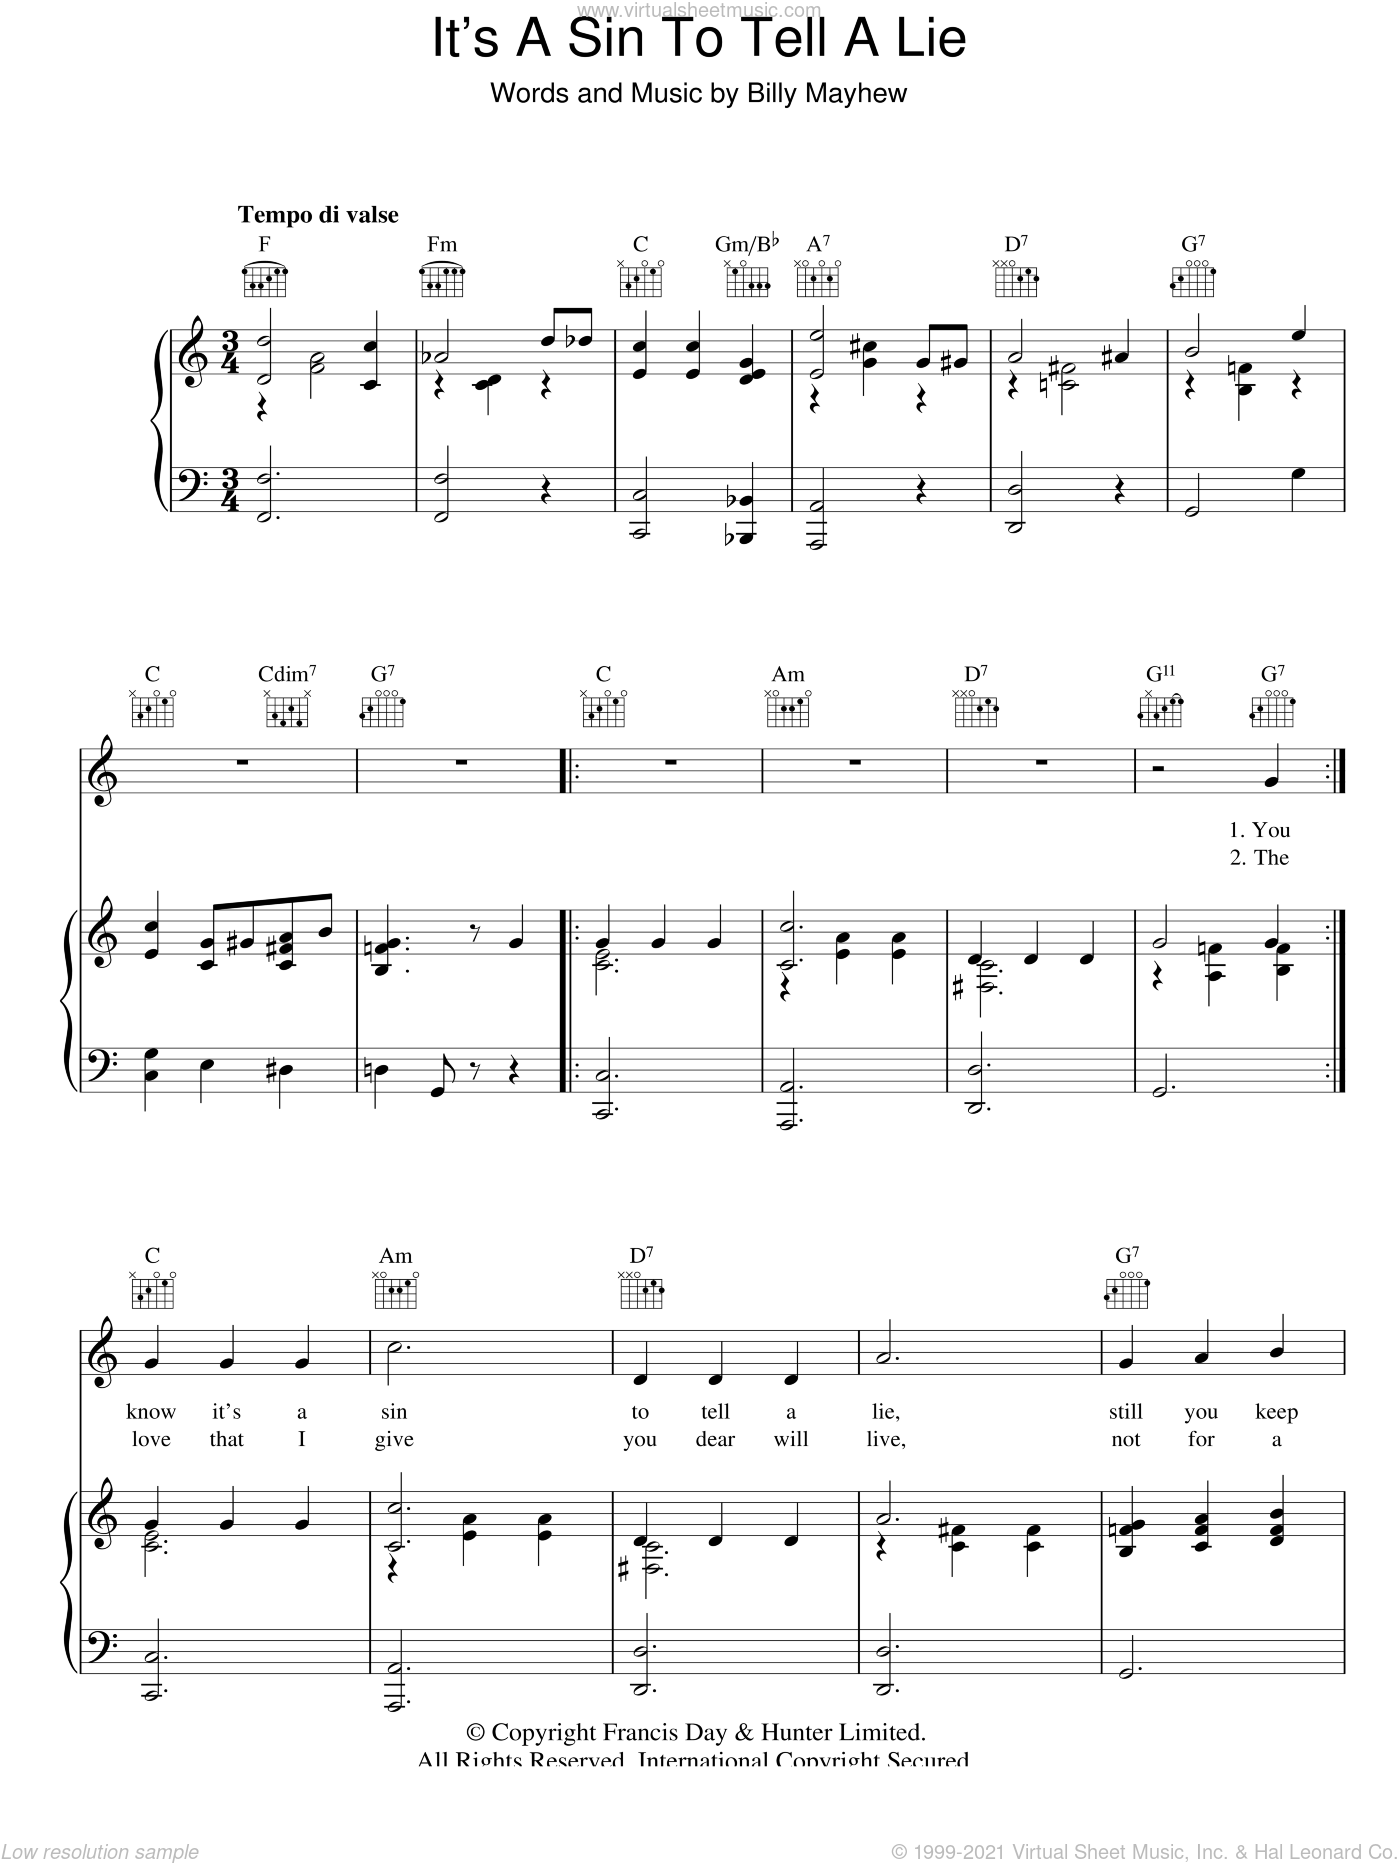 It's A Sin To Tell A Lie sheet music for voice, piano or guitar by Billy Mayhew, intermediate. Score Image Preview.